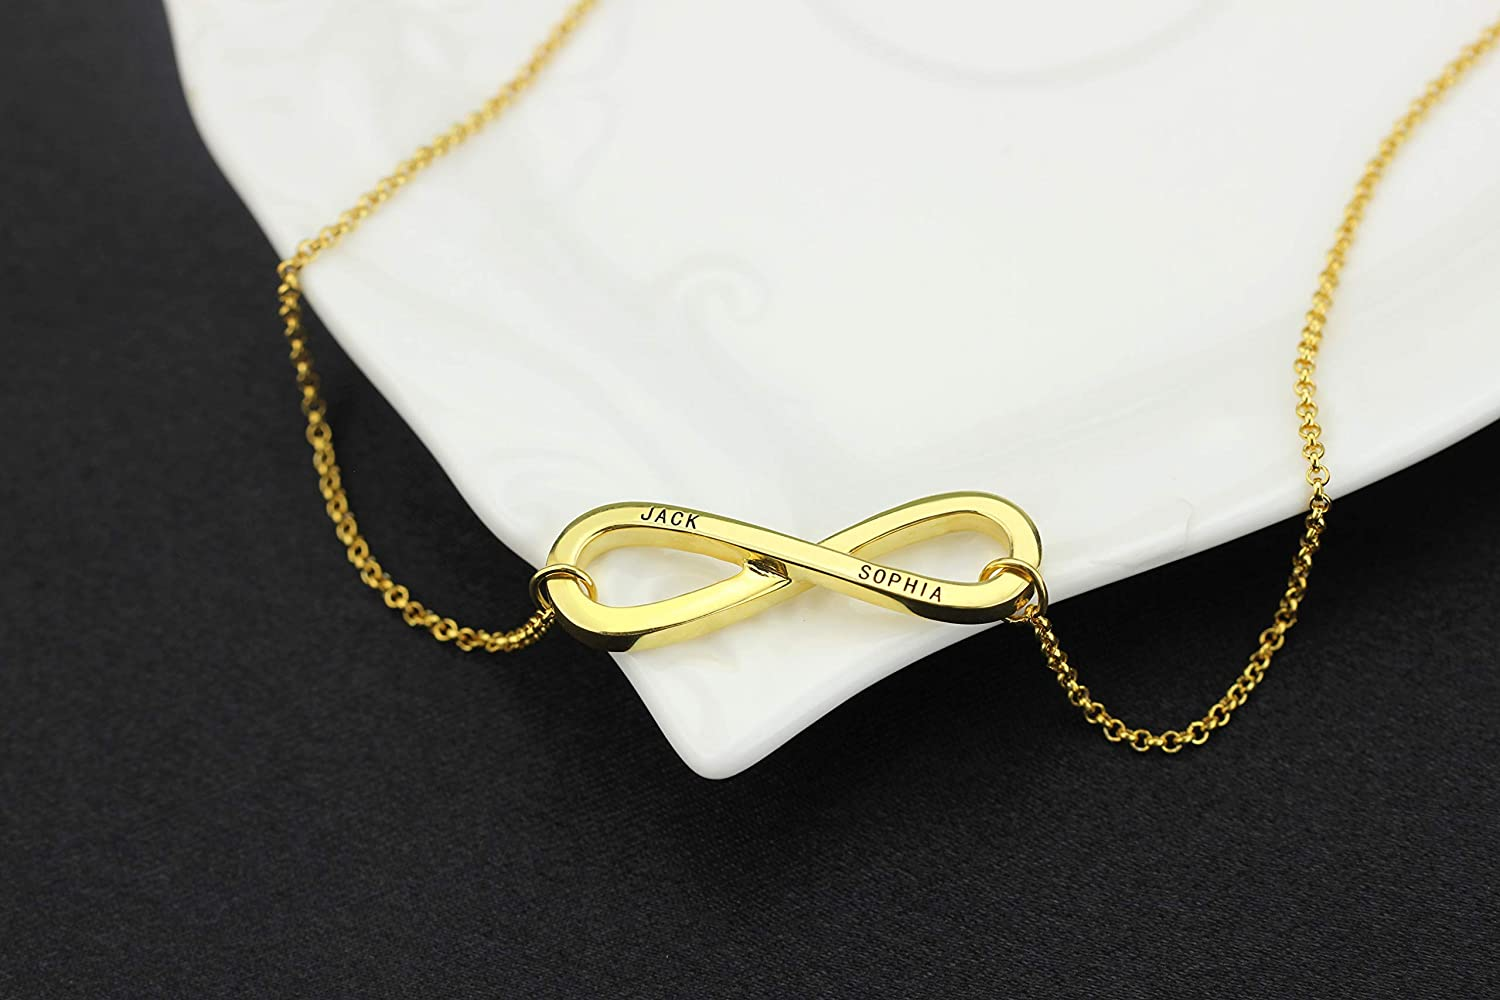 Getname Necklace Infinity Name Necklace Sterling Silver Engraved Infinity Necklace with Any Two Names